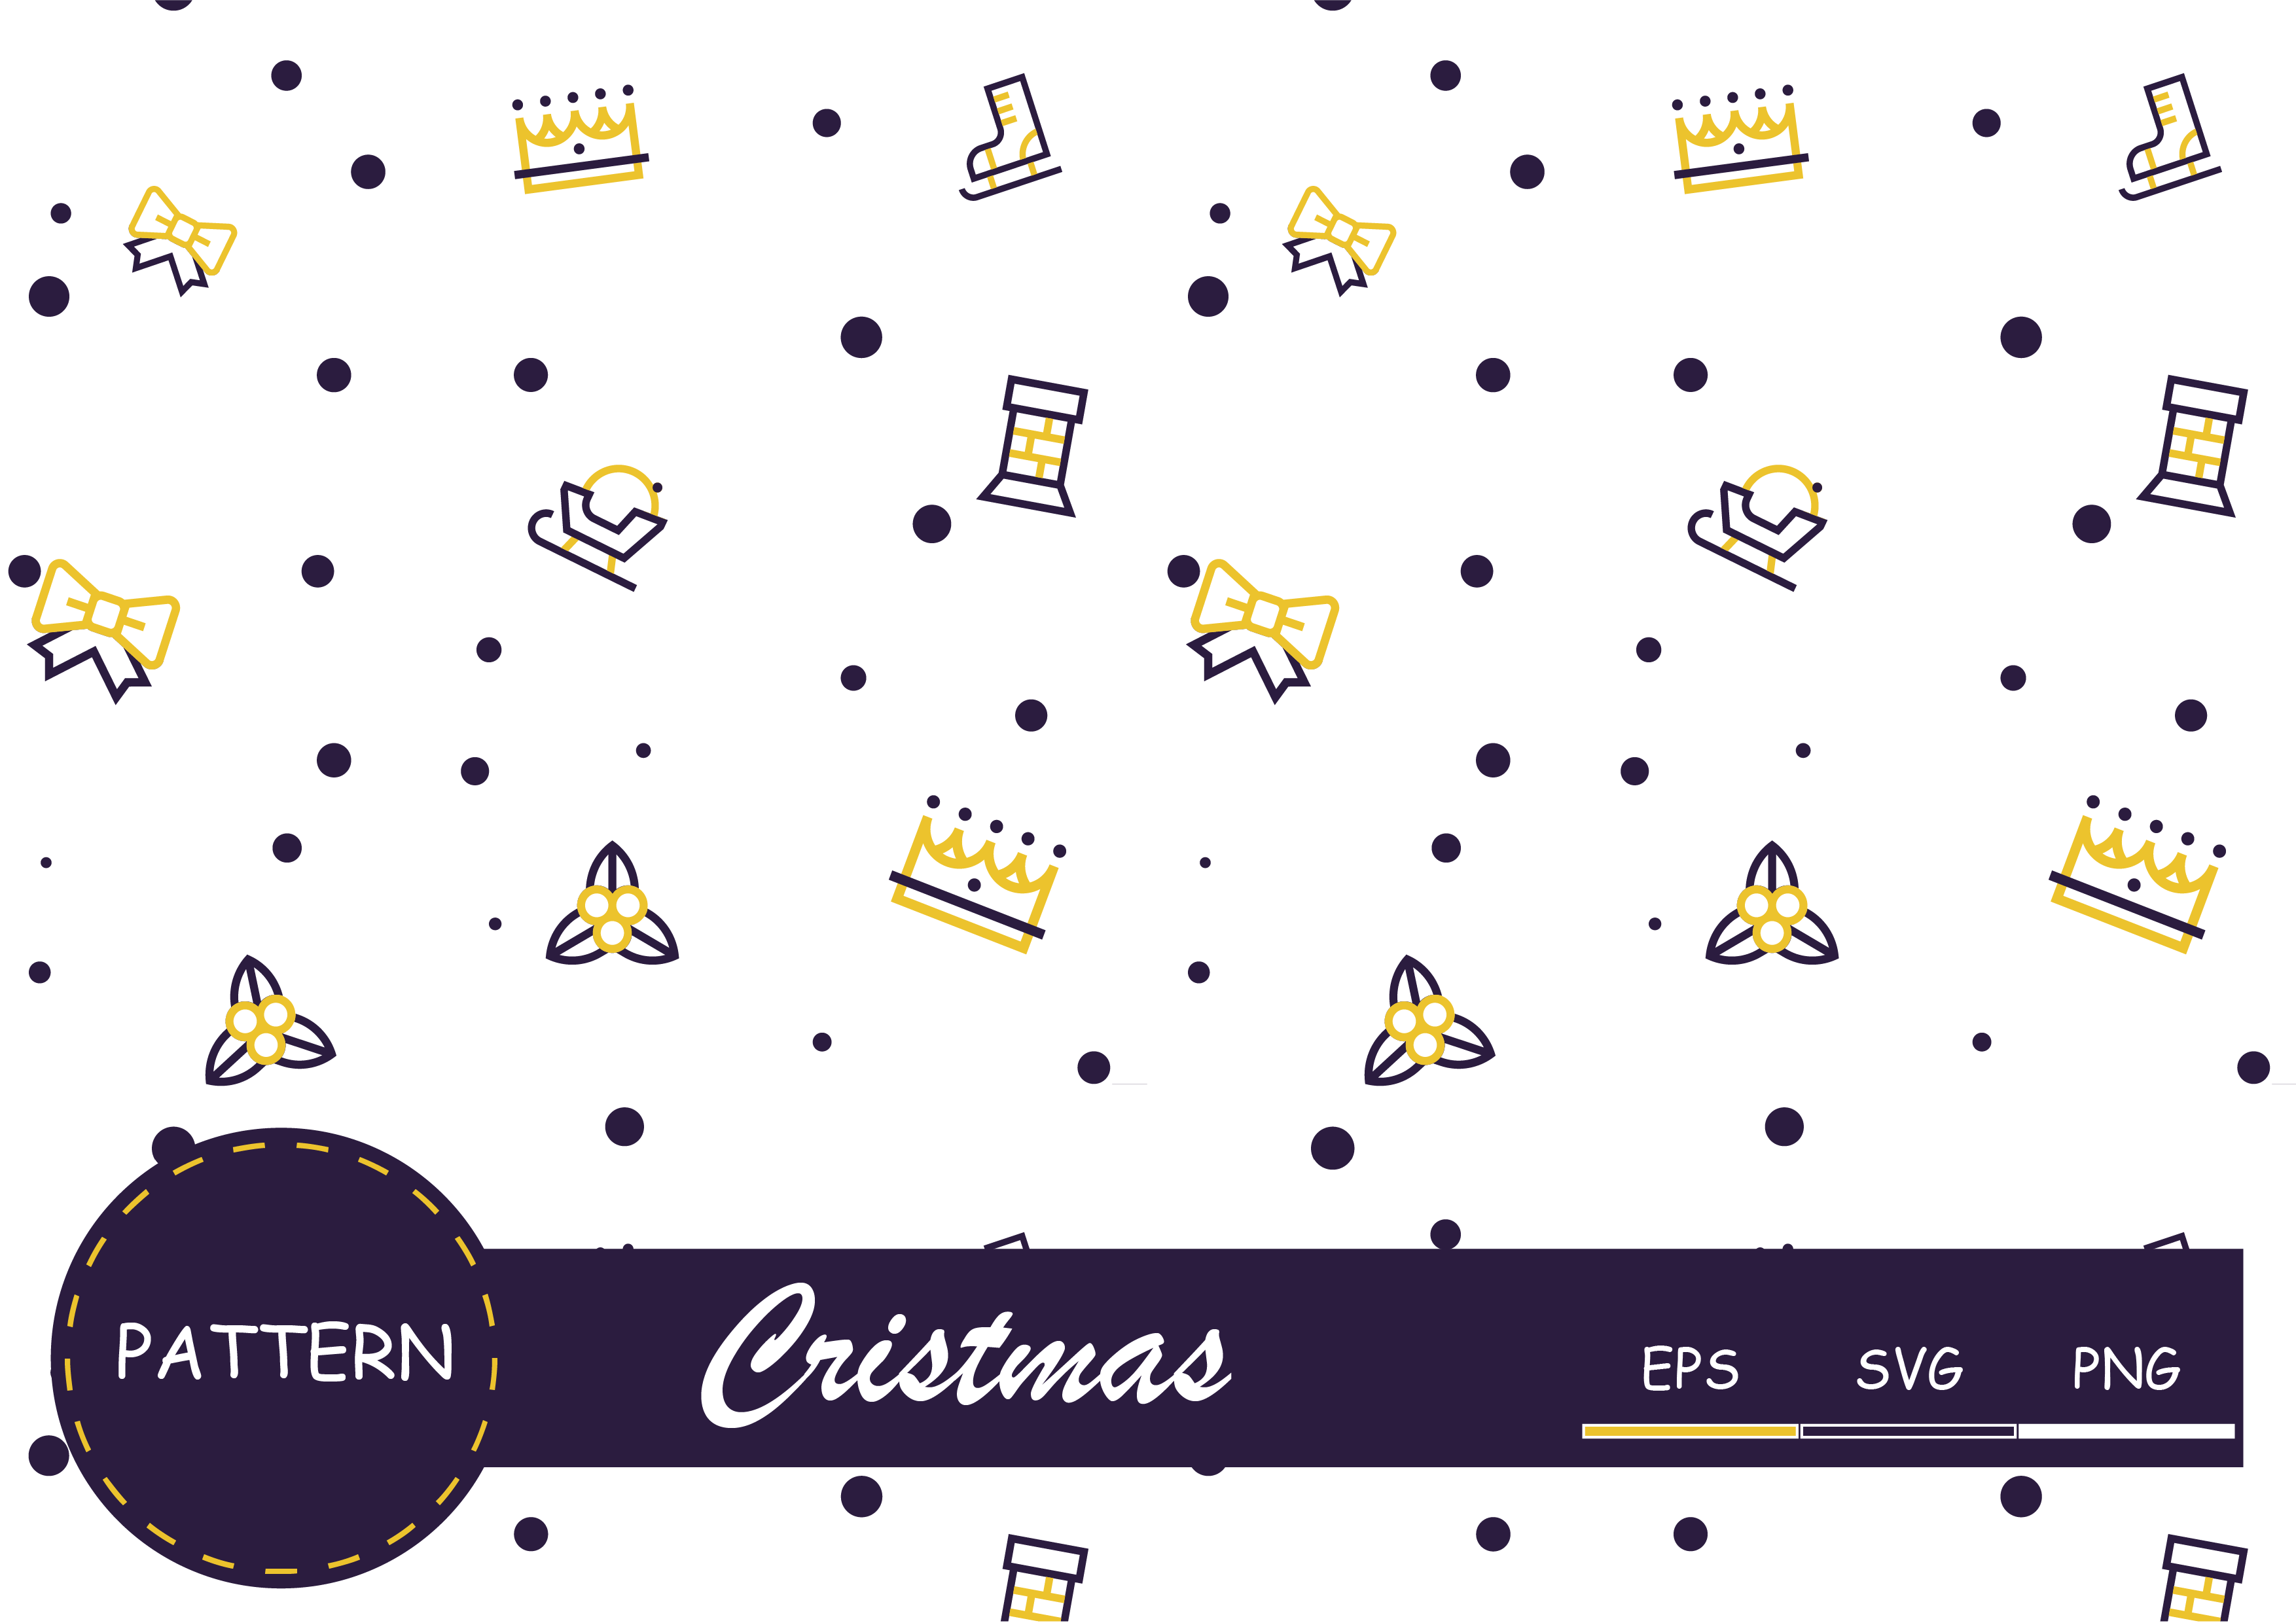 Download Free Pattern Cristmas Graphic By Raihanmubarok48 Creative Fabrica for Cricut Explore, Silhouette and other cutting machines.